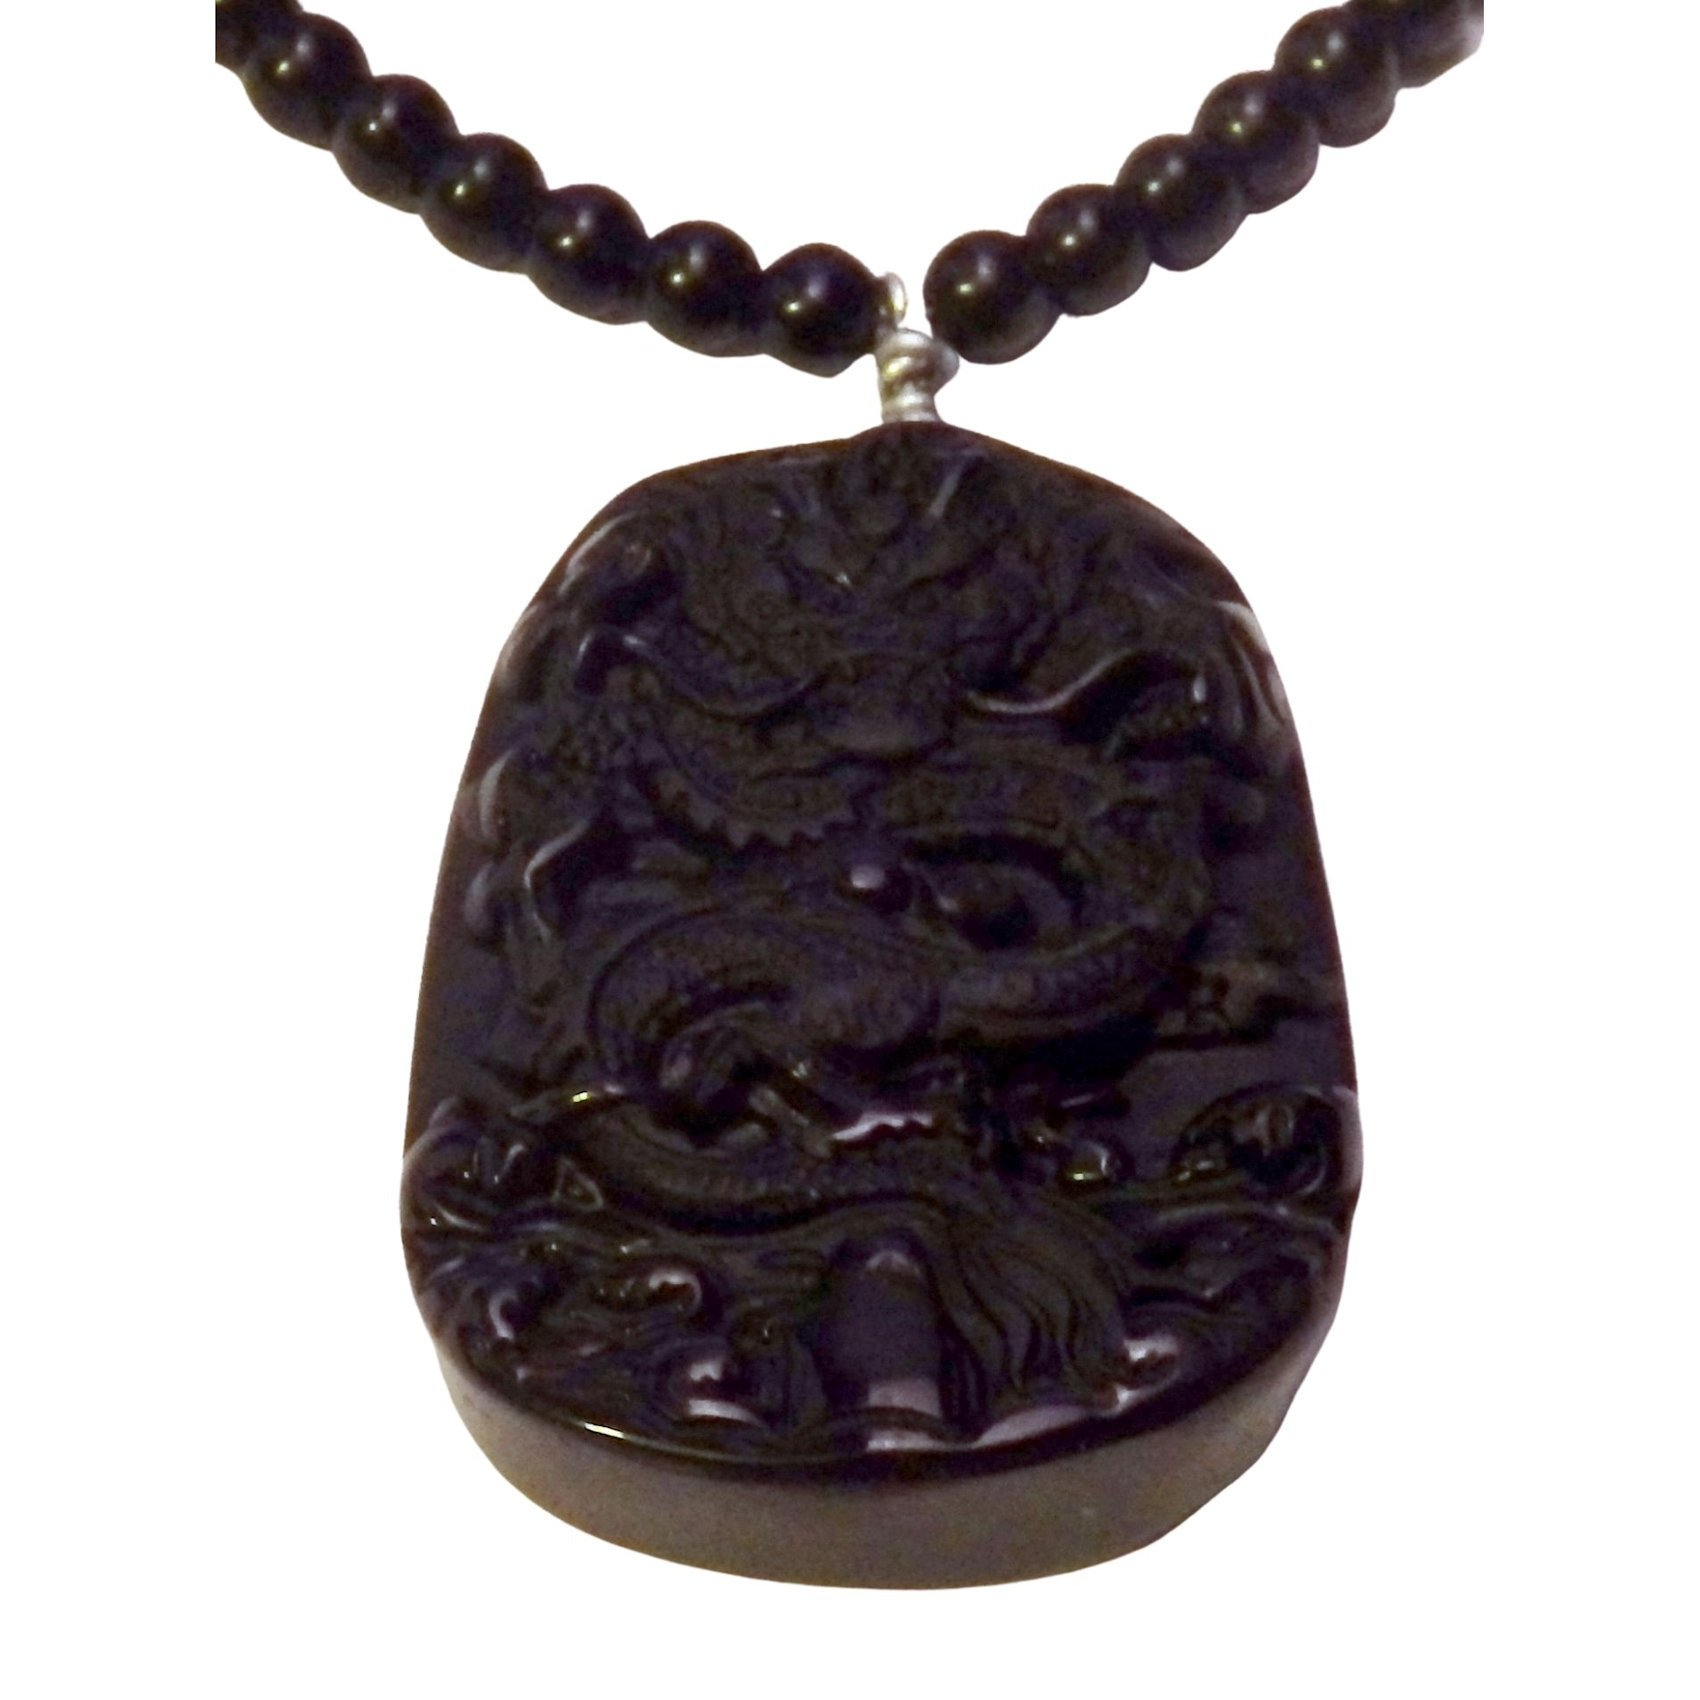 Carved obsidian dragon and obsidian necklace 1311